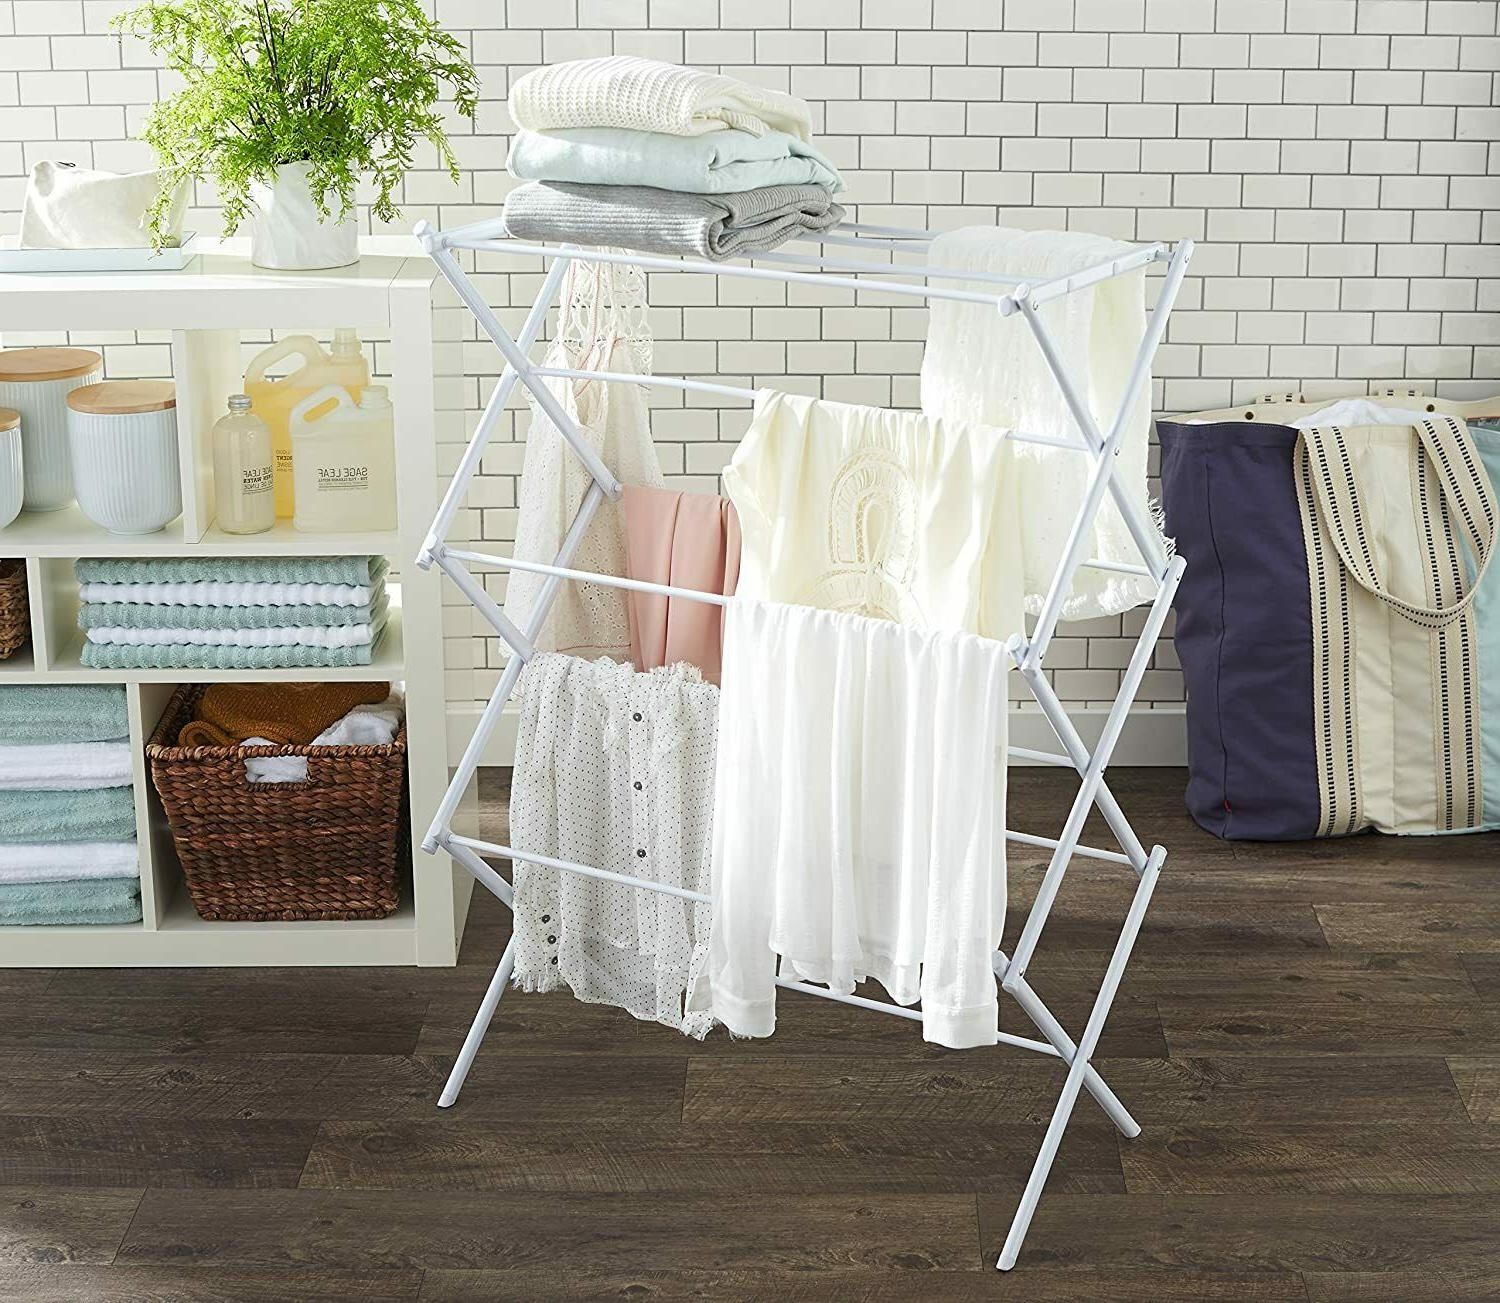 White Steel Folding Collapsible Drying Rack Organizer